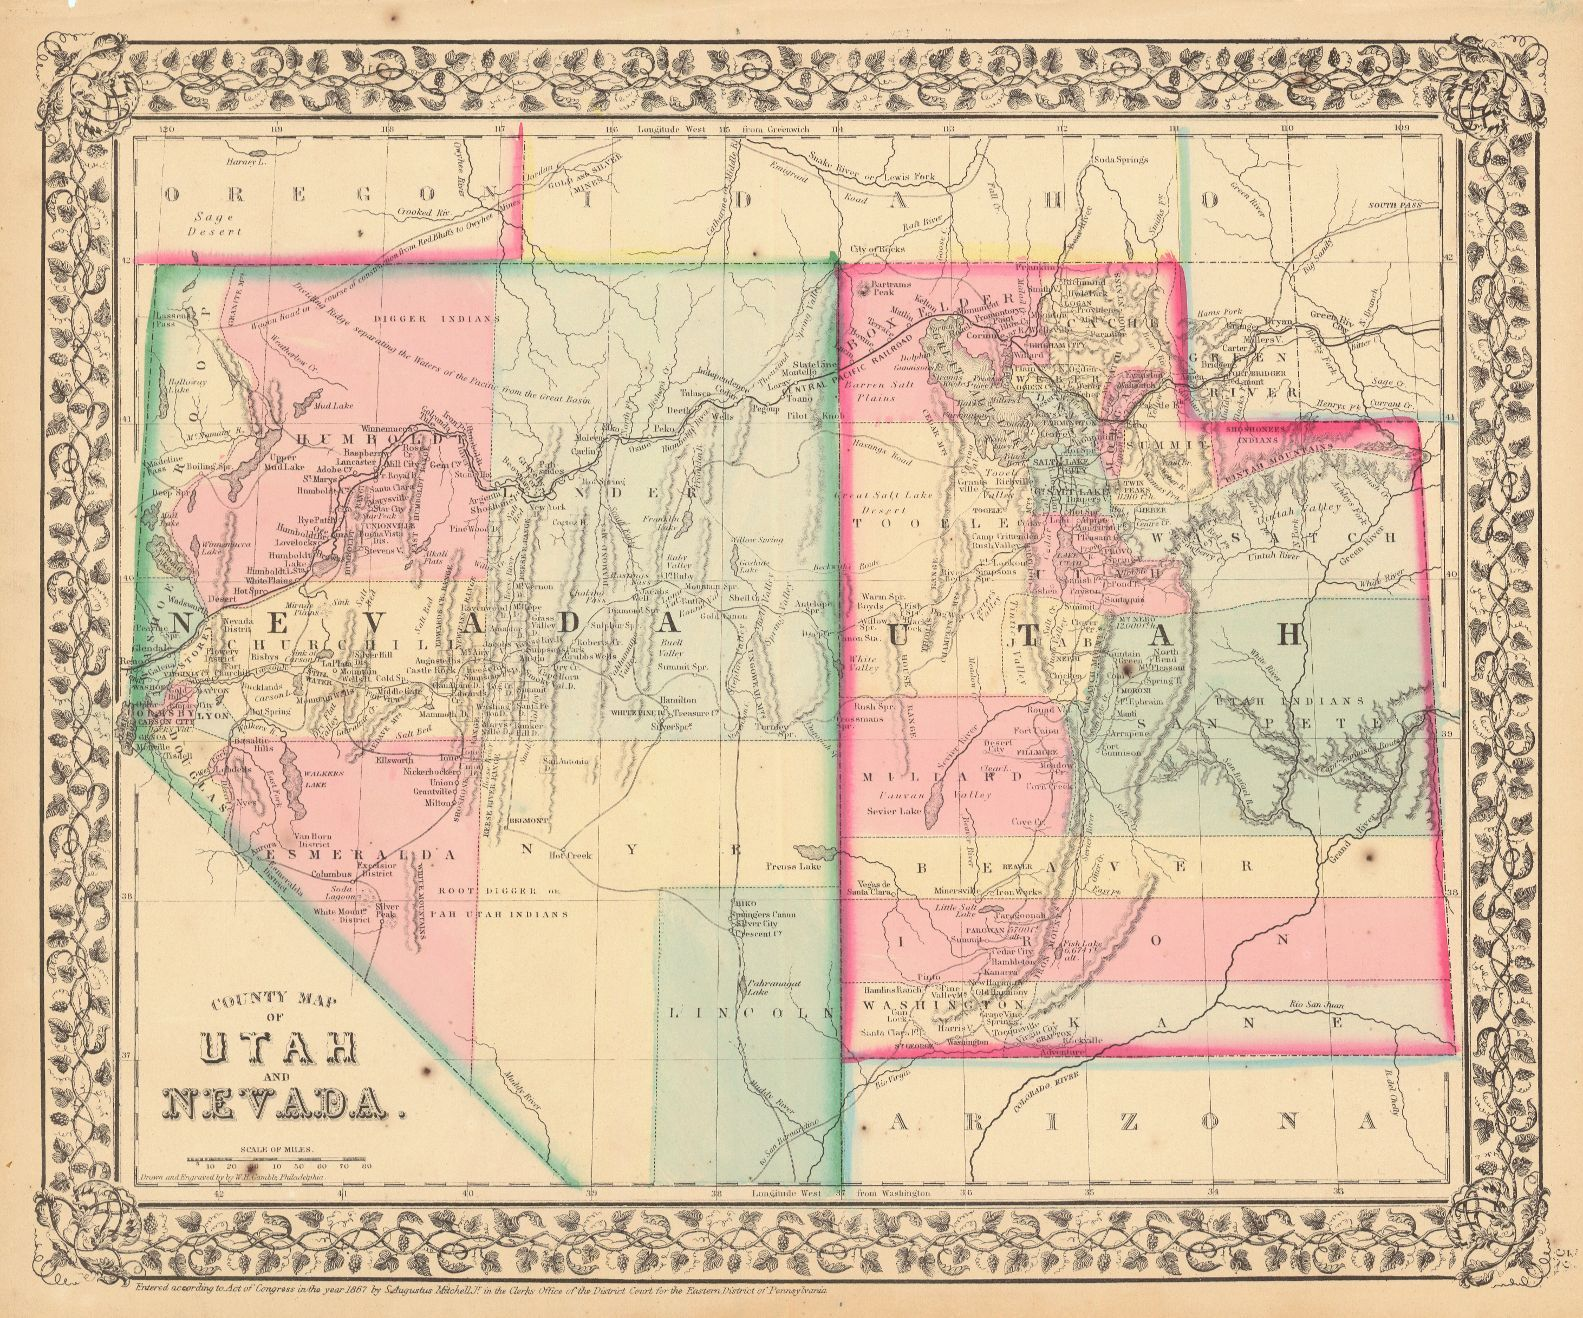 Map Antique County Map Of Utah And Nevada County Map Map Nevada